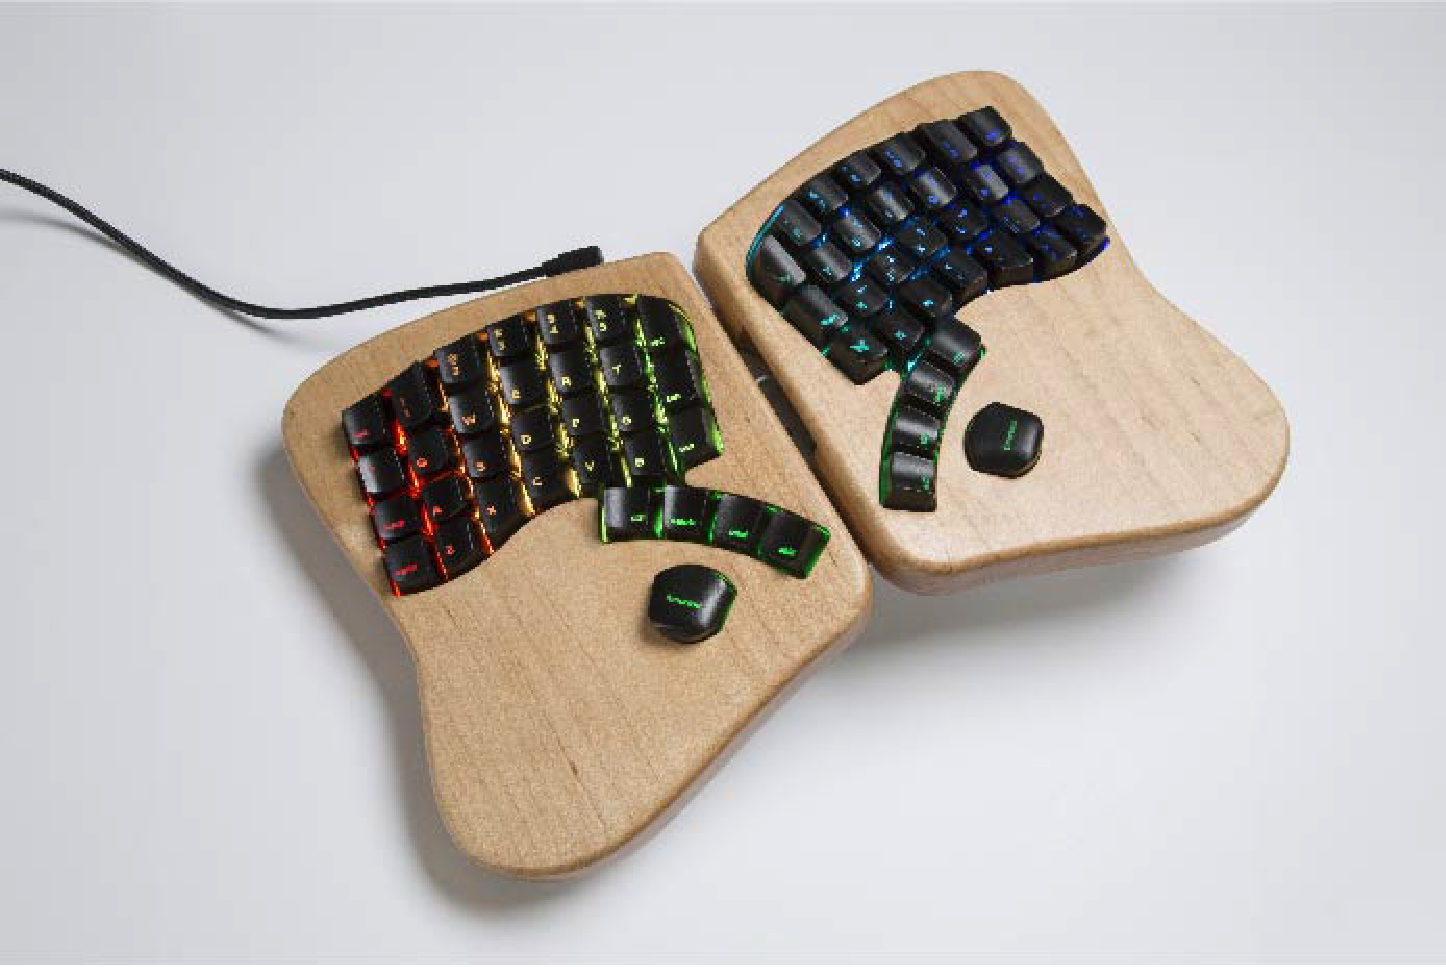 keyboardio.about.img-alt-keyboardio-product-shot